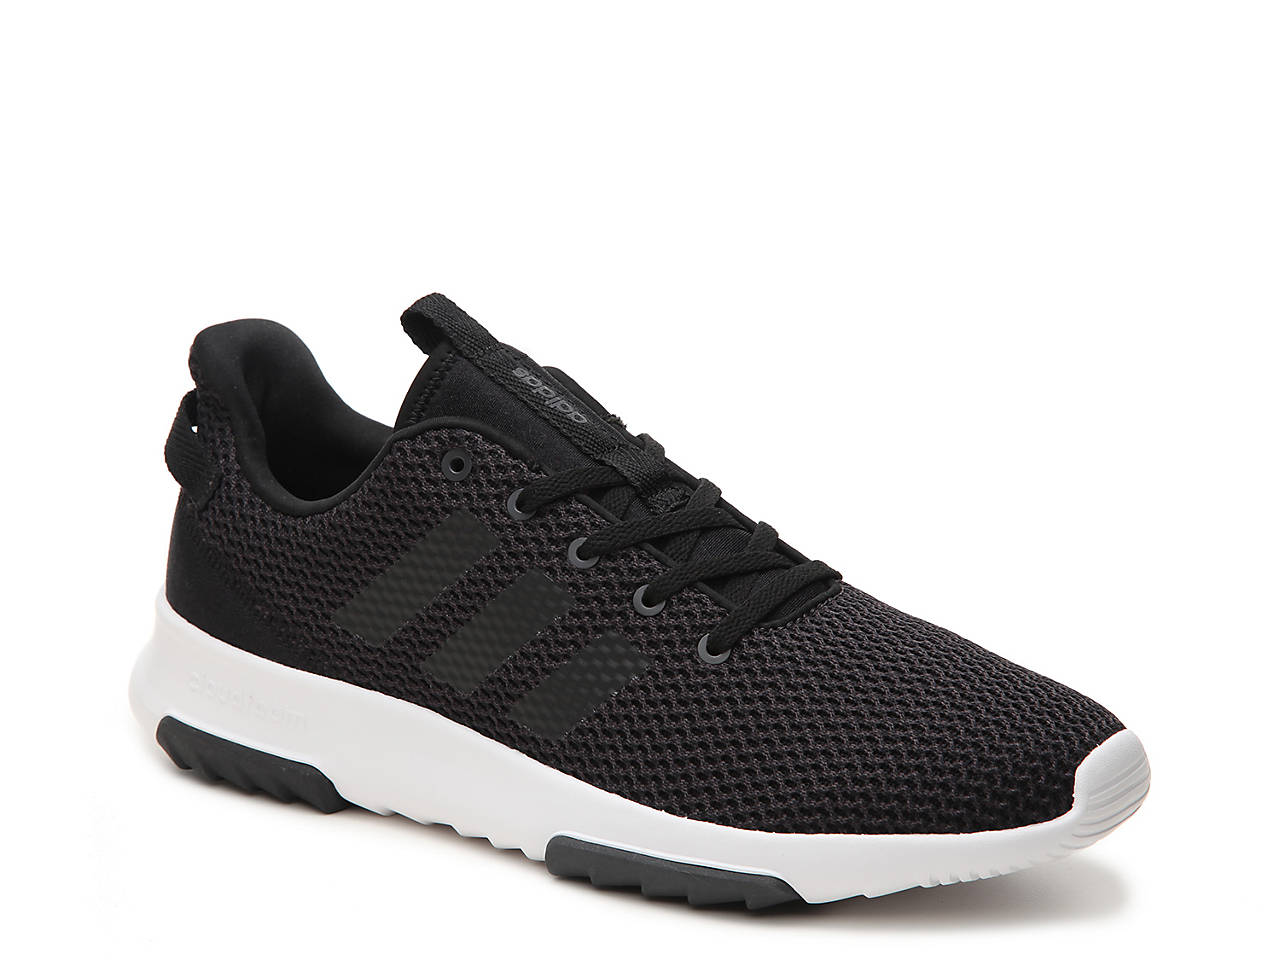 0966d092b8e adidas Cloudfoam Racer TR Sneaker - Men s Men s Shoes